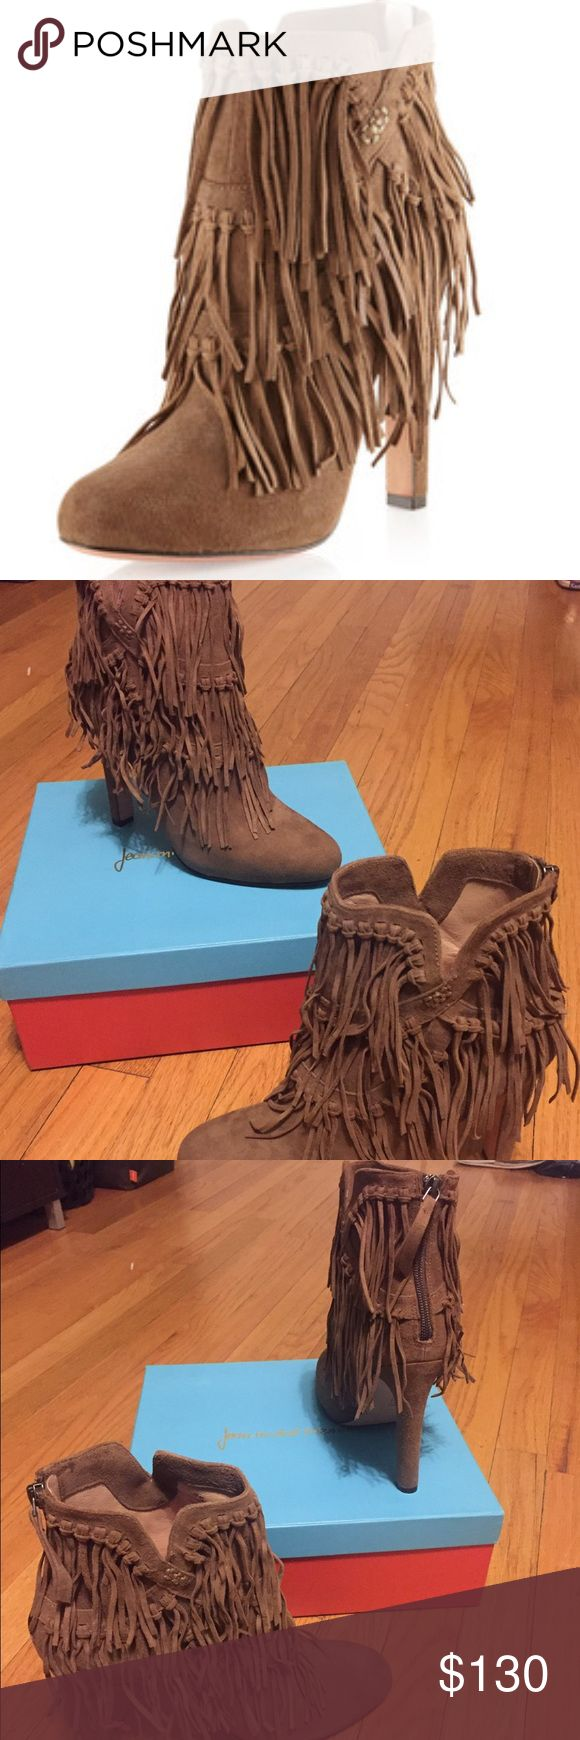 """NIB JEAN MICHEL CAZABAT Pepe Fringe Booties Sz 41 Guaranteed Authentic. Org retail: $400. New, never worn; comes with box, dust bag, and replacement heel tips. Brown suede boots, with fringe details. Back zip for easy on and off.  5"""" heel, 1"""" platform. Sz 41; fits a 9.5. Shoes have been store tried. NO TRADES. Open to offers through the offer button ☺ Jean Michel Cazabat Shoes Ankle Boots & Booties"""